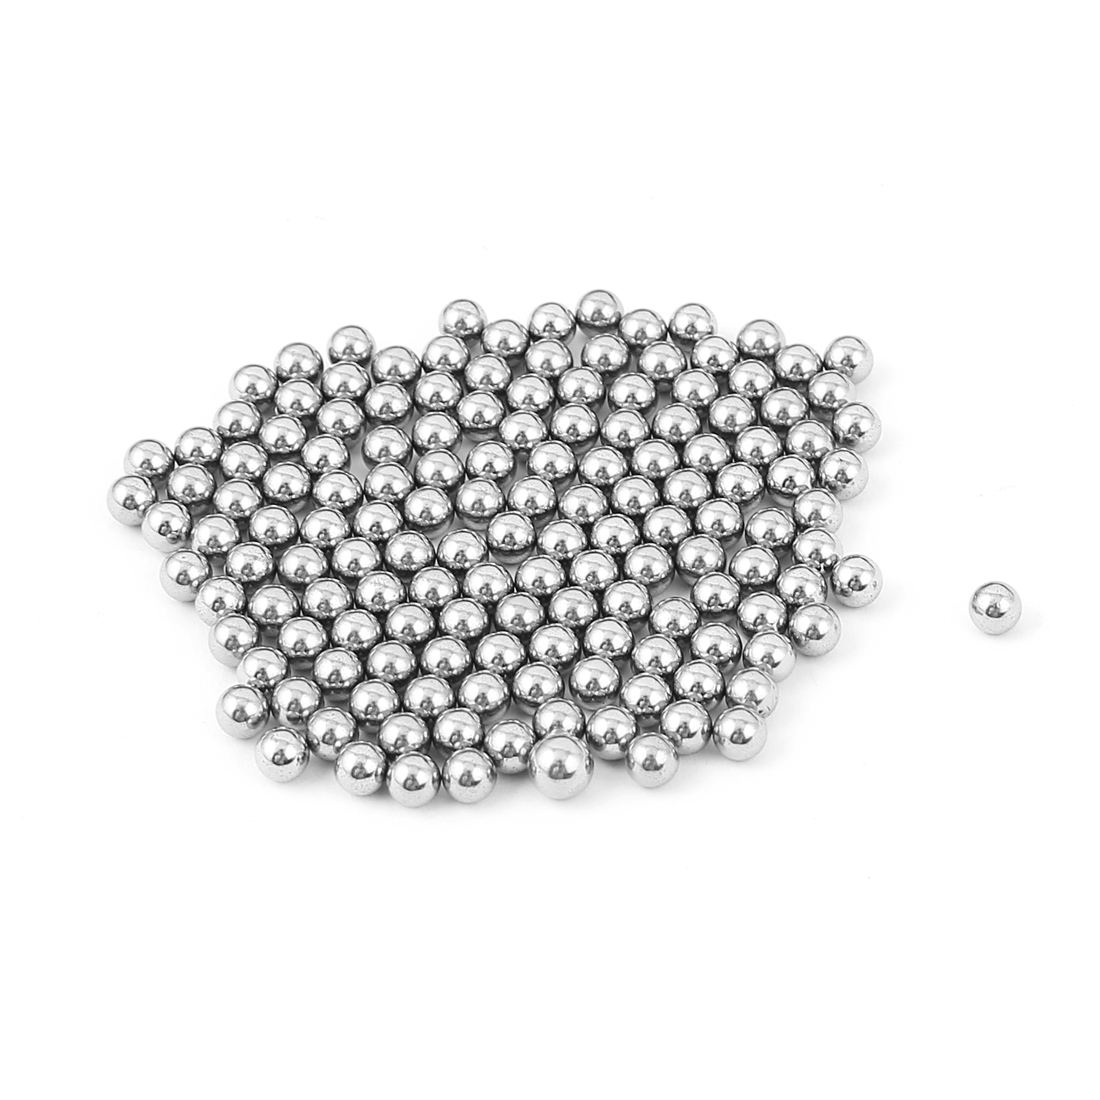 4mm Dia Replacement Bike Bicycle Wheel Steel Bearing Ball Silver Tone 155Pcs